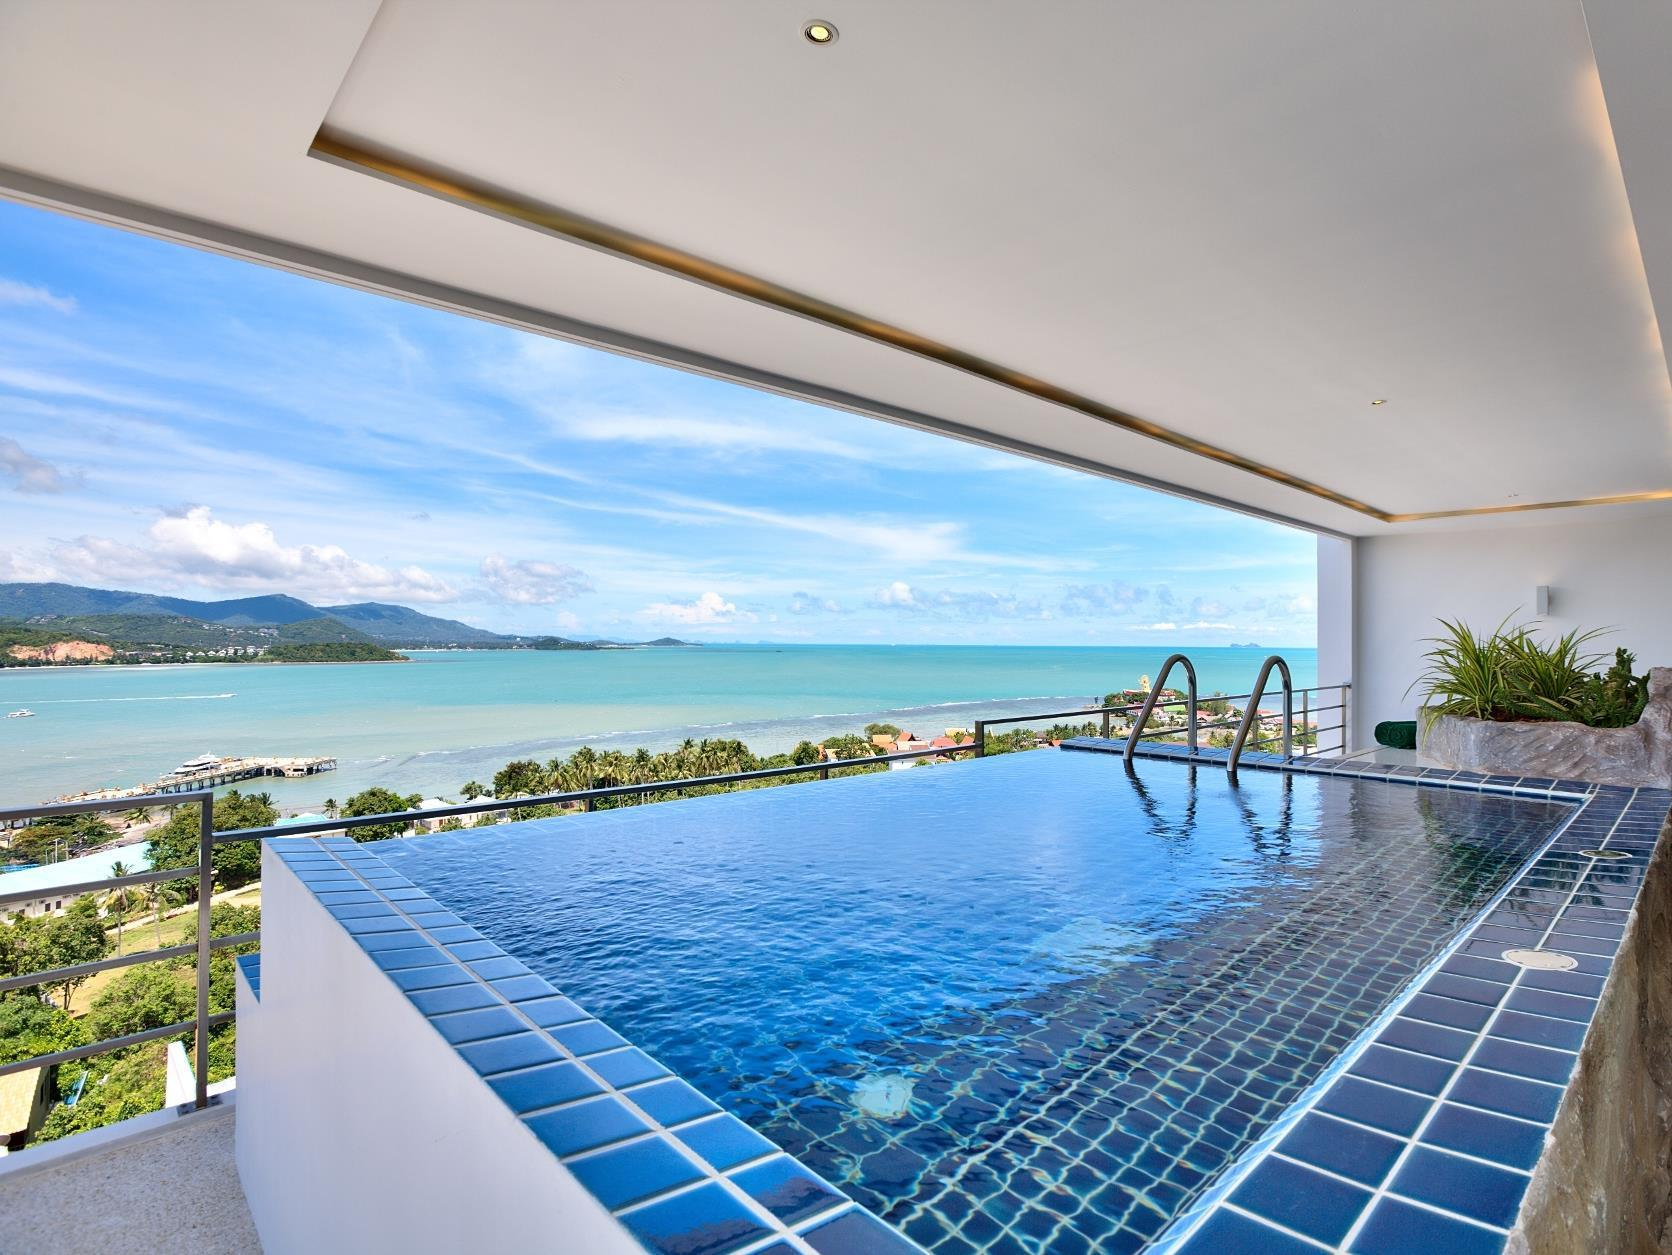 Serene Penthouse 3 Bedrooms 180 Degree Sea View Serene Penthouse 3 Bedrooms 180 Degree Sea View